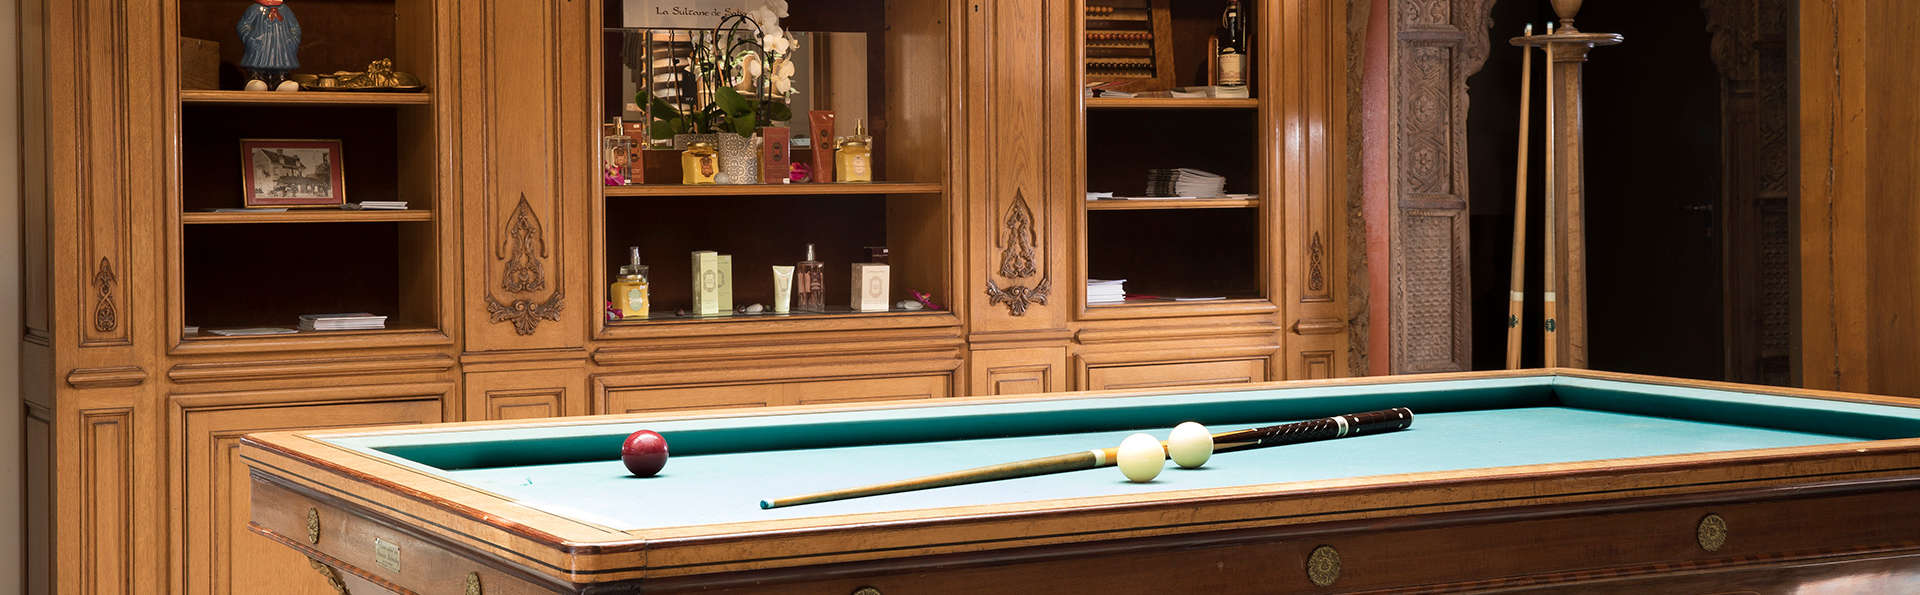 Hôtel et SPA le Lion d'Or - EDIT_NEW_BILLARD.jpg